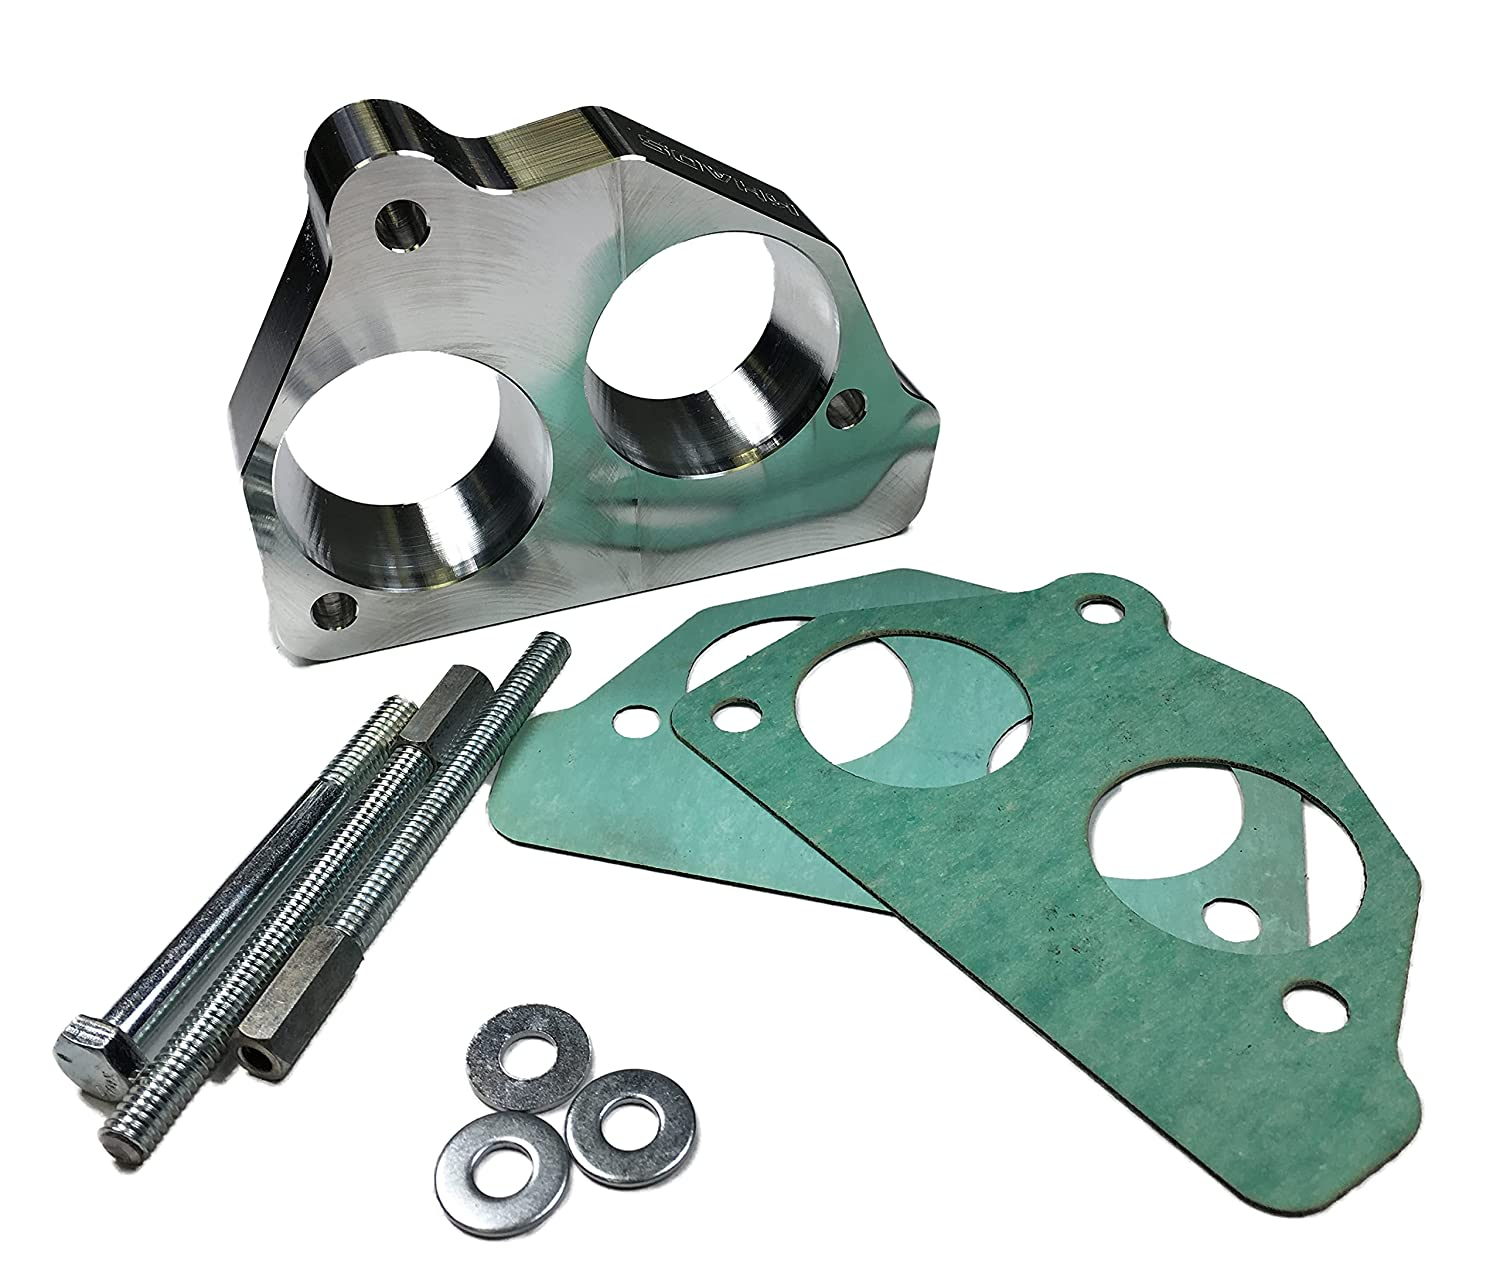 Throttle online shopping Body Spacer TBI Adaptor Big Small Bore to 1 year warranty 87-95 G Chevy